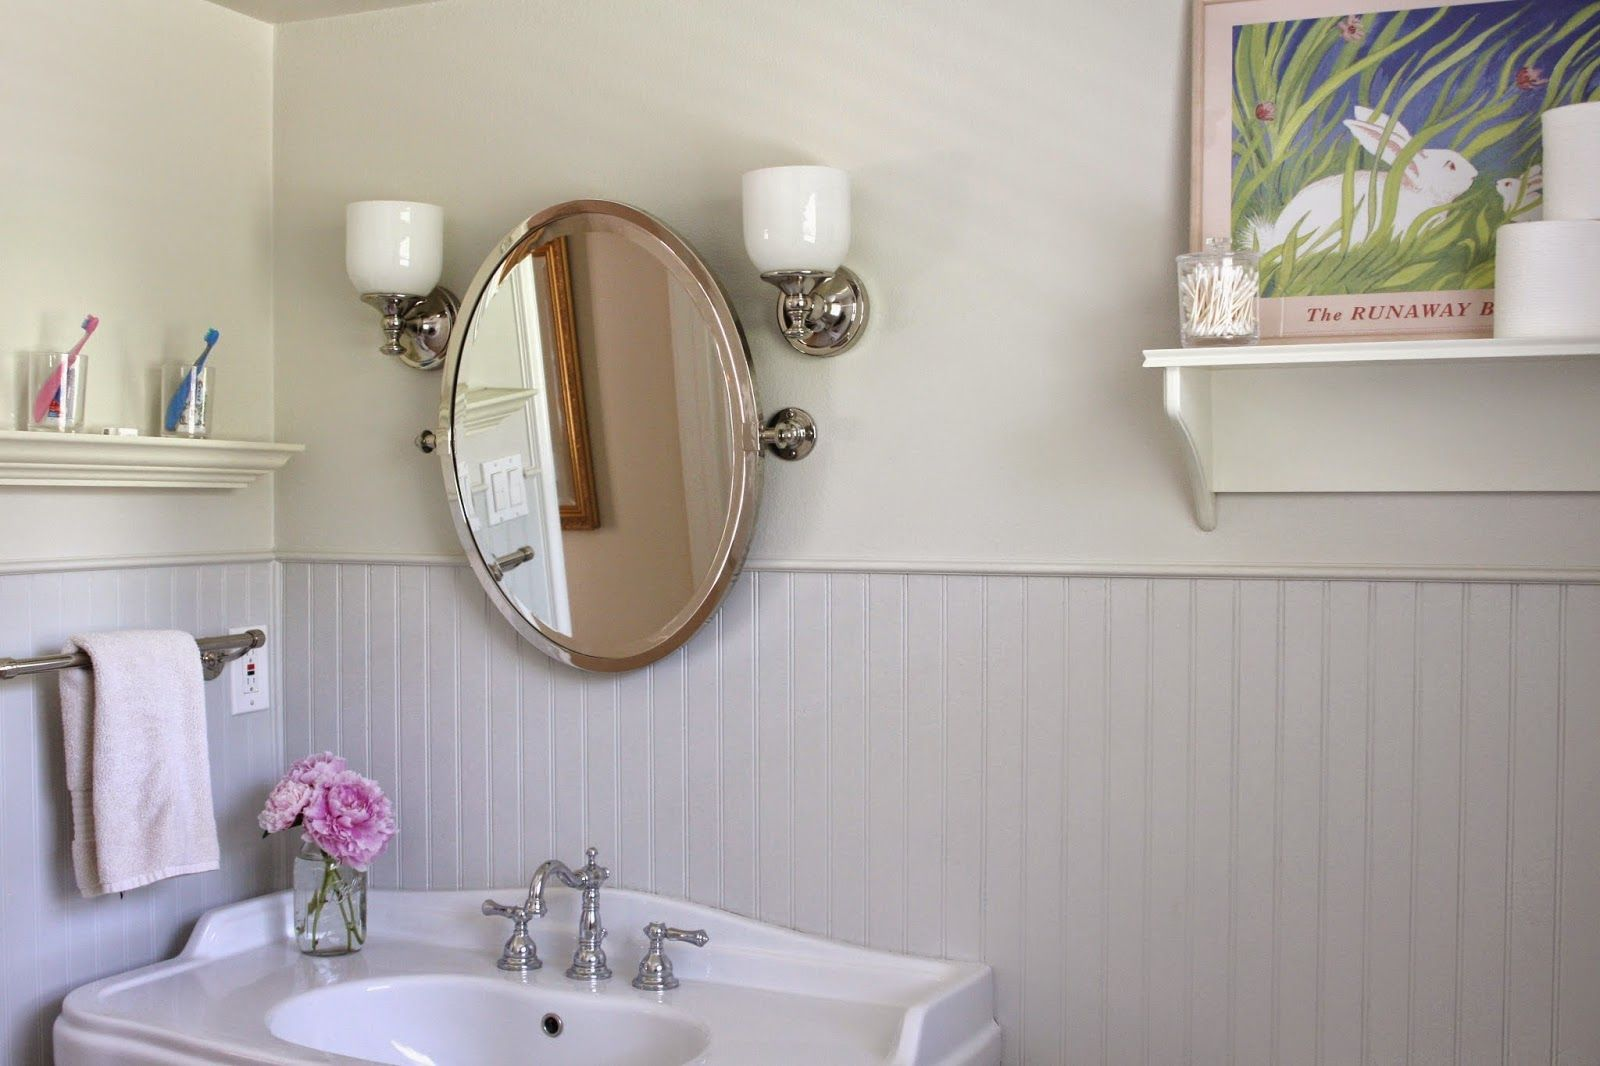 shelf over sink and toilet - Google Search | Bathrooms | Pinterest ...